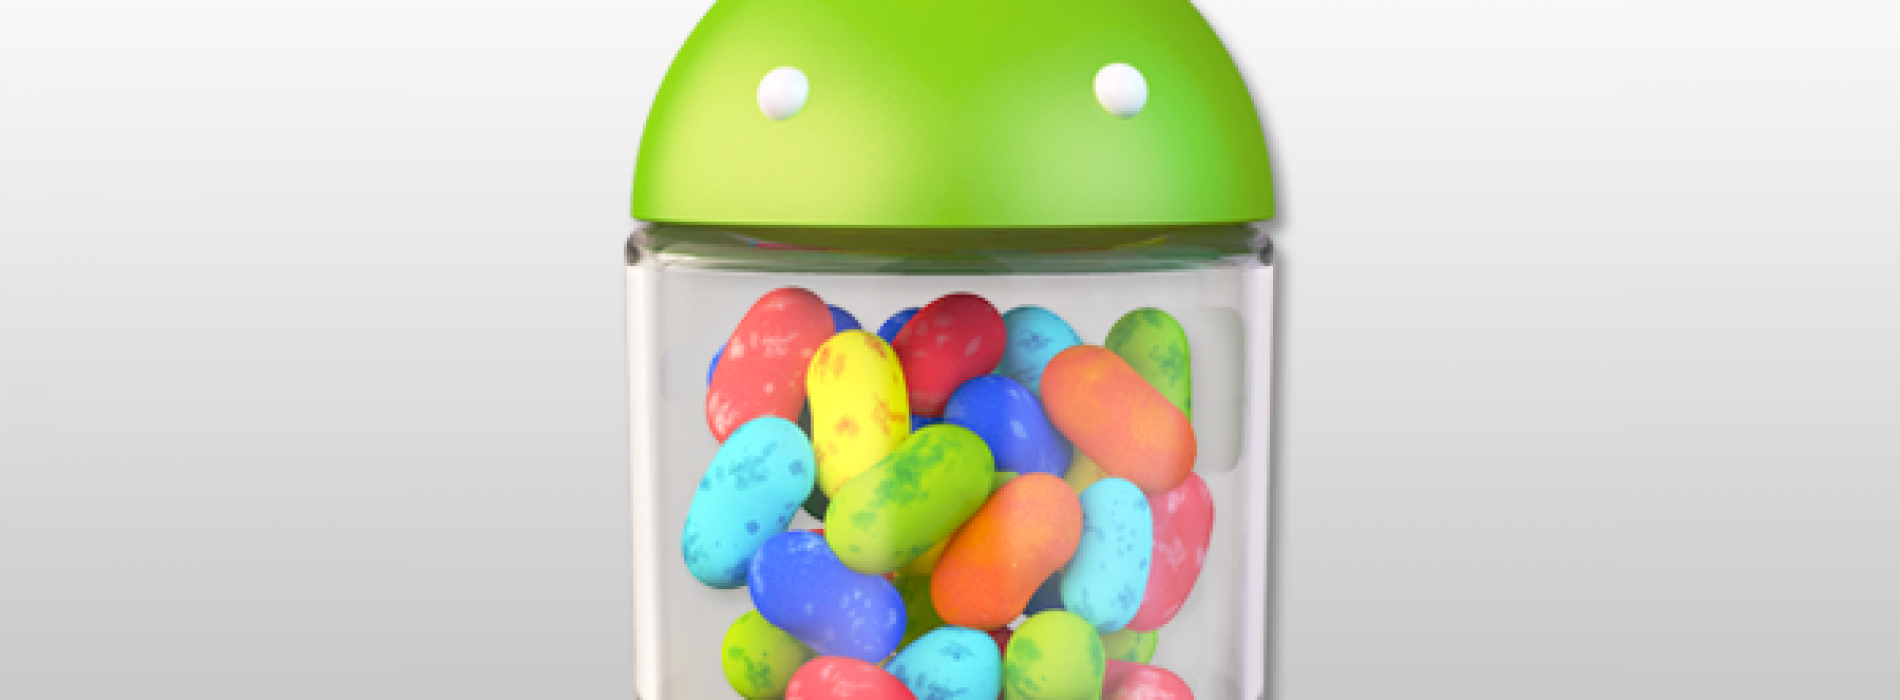 HTC reportedly readying 4.1 Jelly Bean for One XL, One S